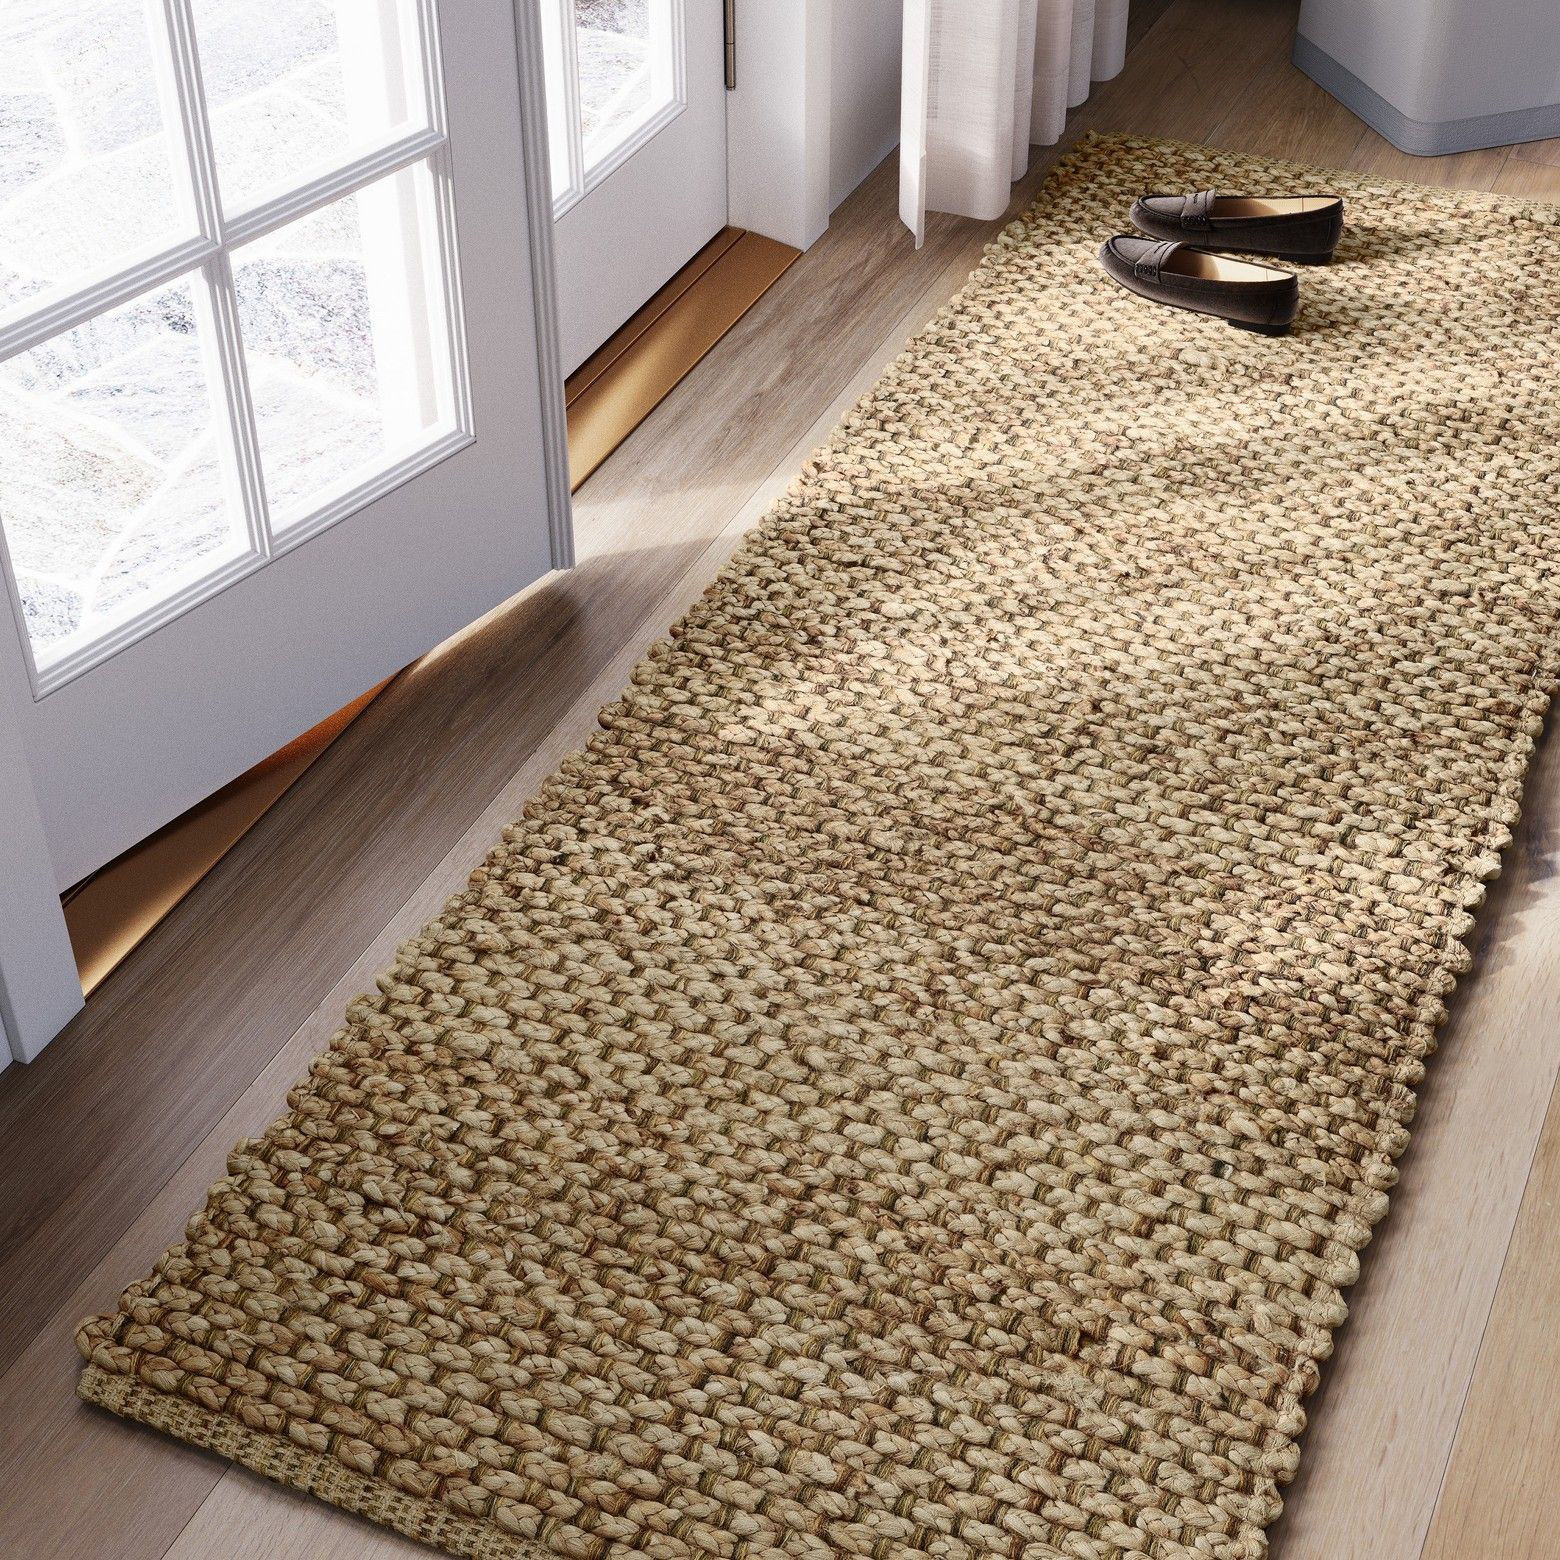 Woven Runner Rug Solid Natural Threshold Rugs Area Rugs Rug Runner